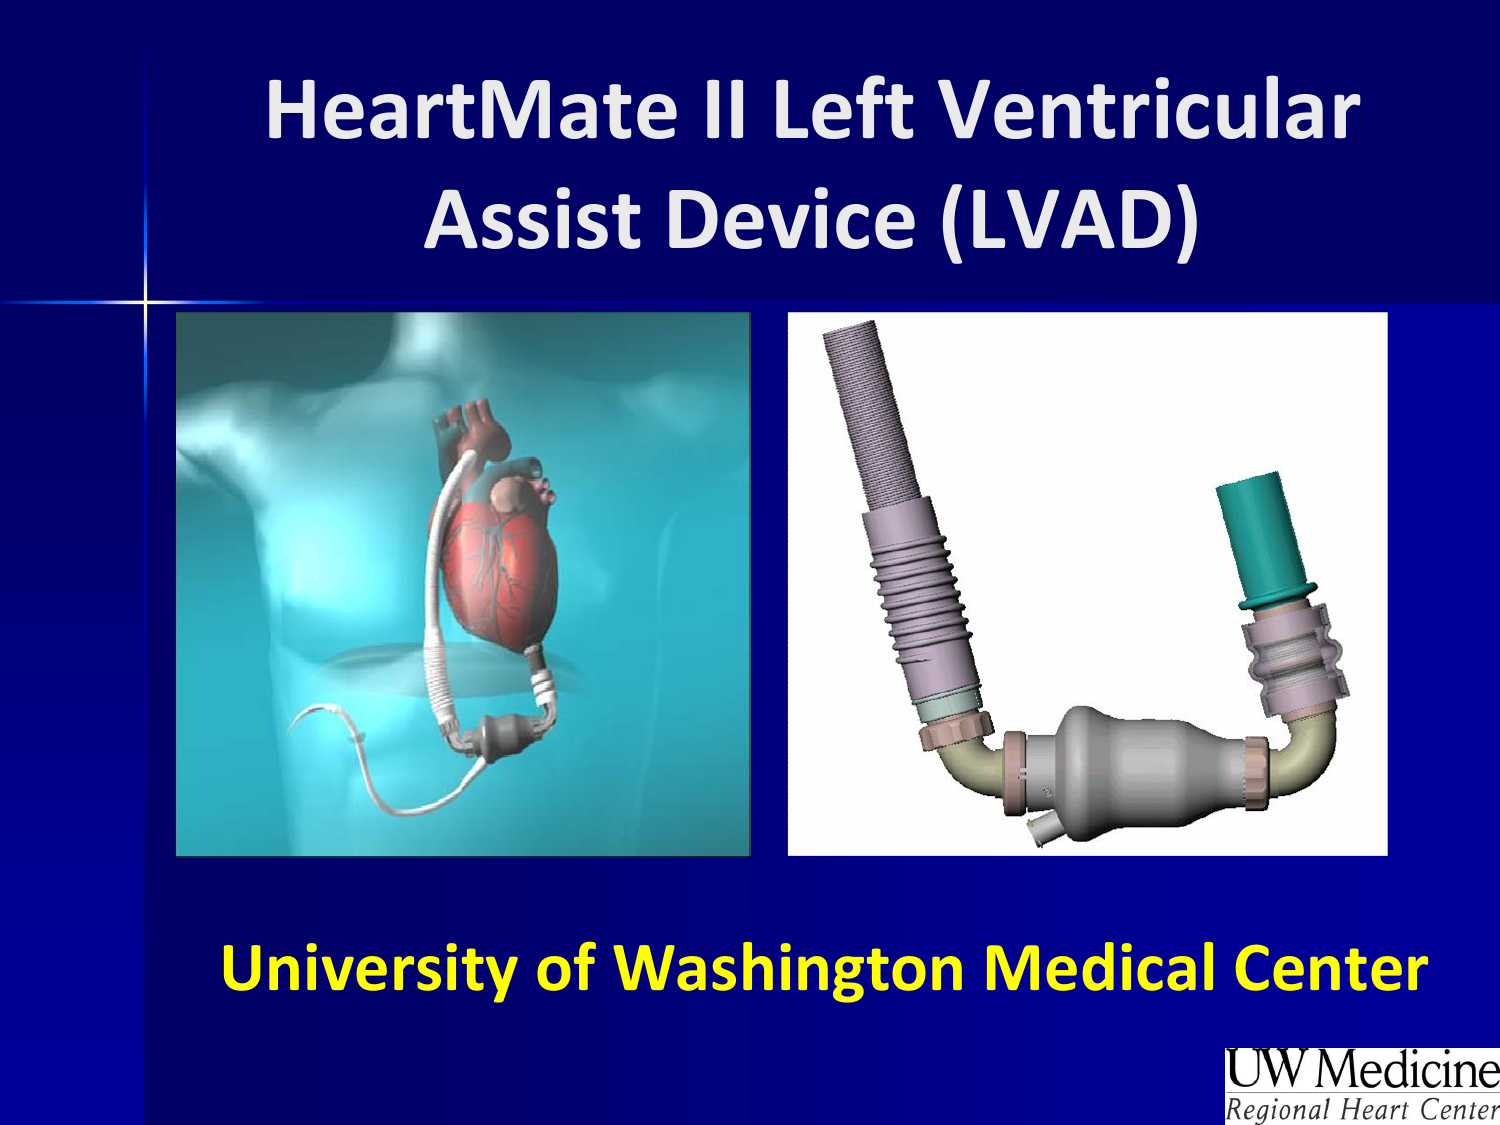 HeartMate II Left Ventricular Assist Device (LVAD)  Pivotal Trial